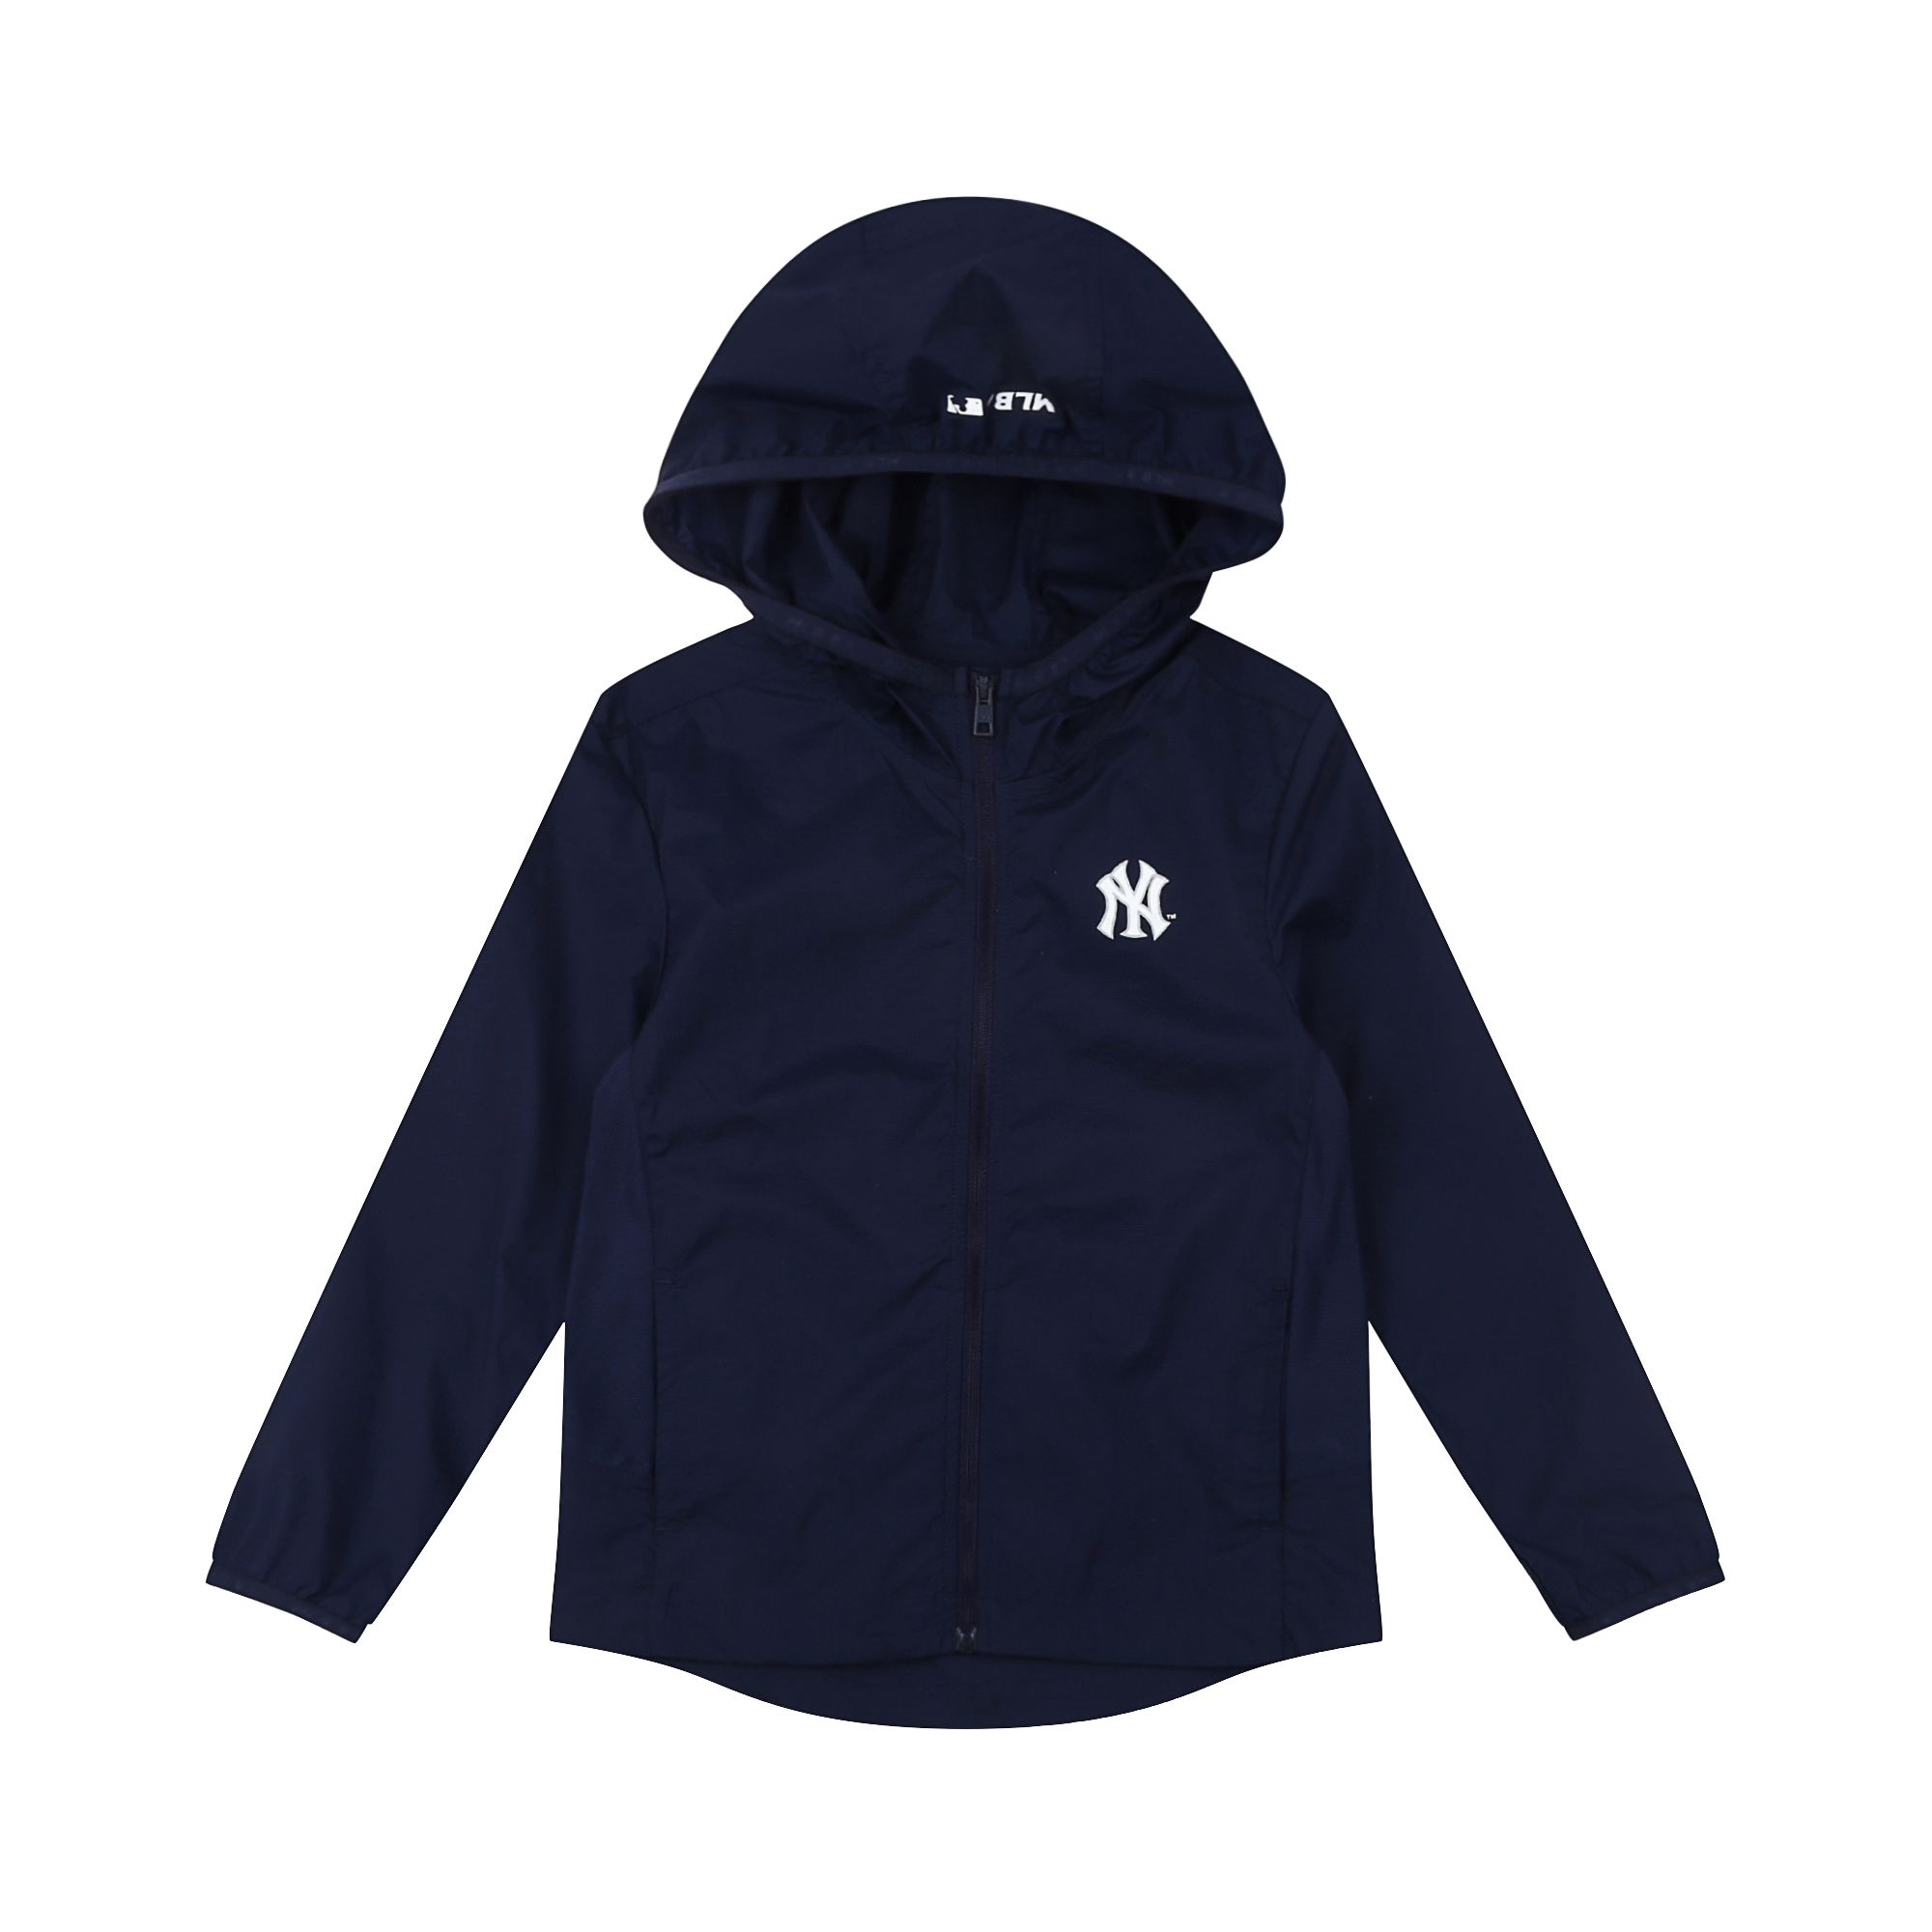 NEW YORK YANKEES BACK LOGO POINT WINDBREAKER